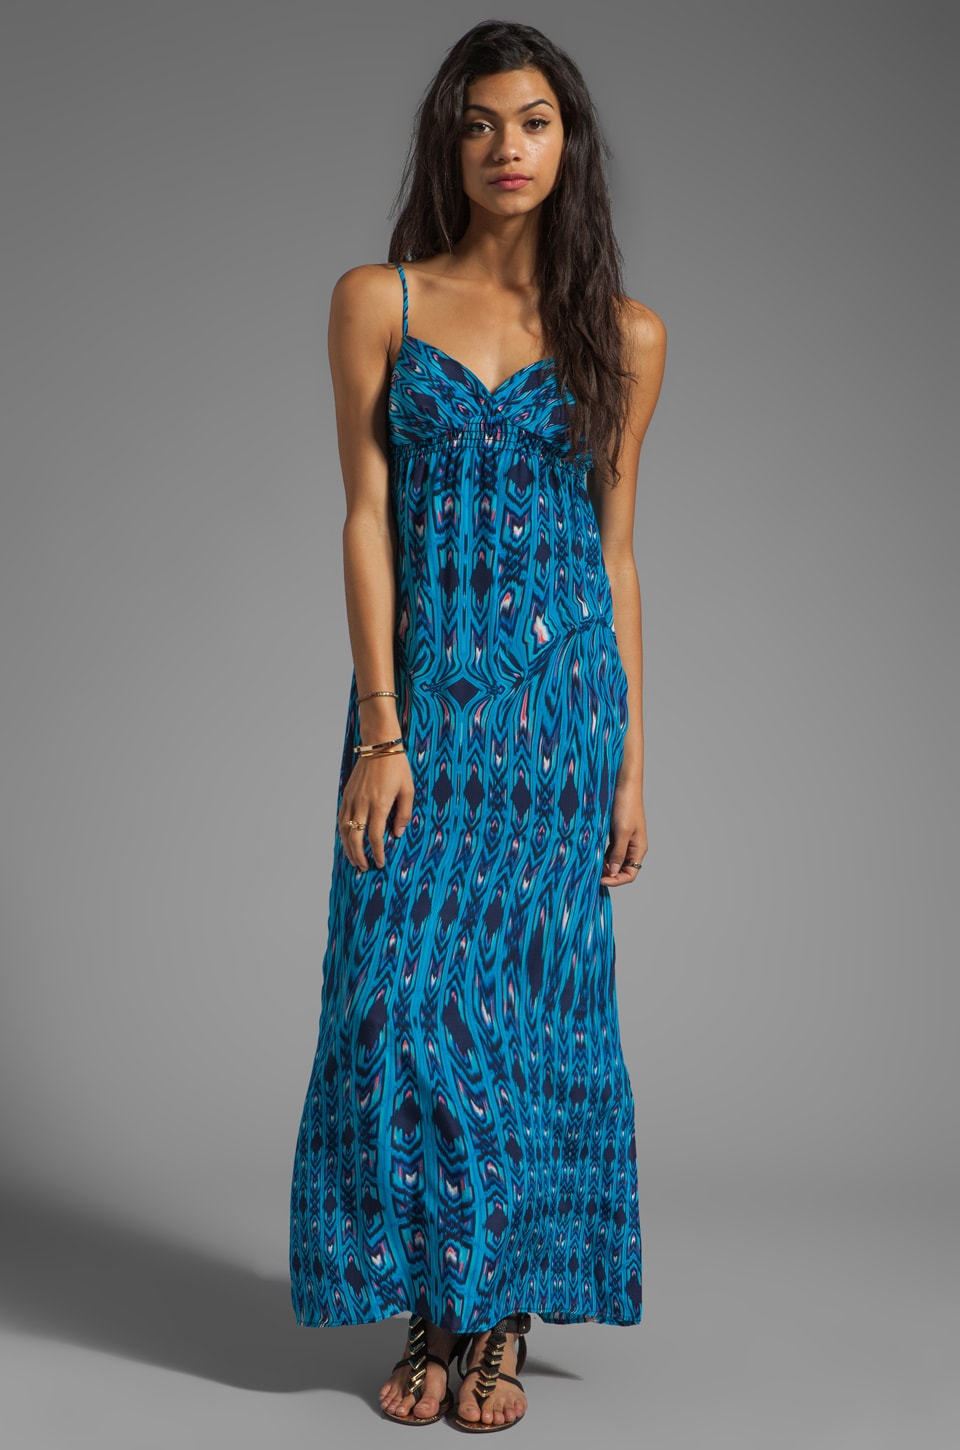 Eight Sixty Maxi in Turquoise/Navy